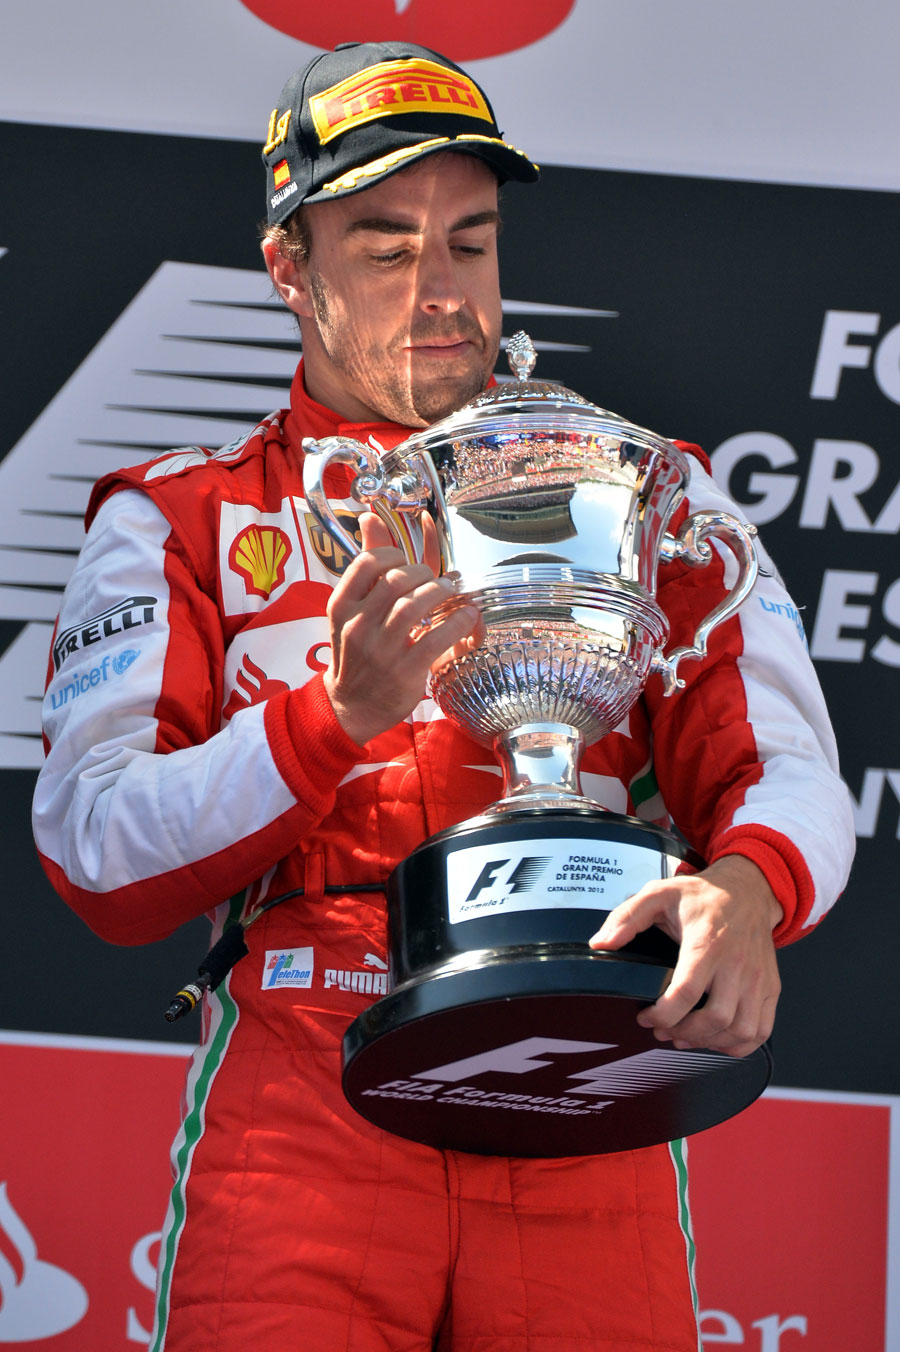 Fernando Alonso admires his winner's trophy